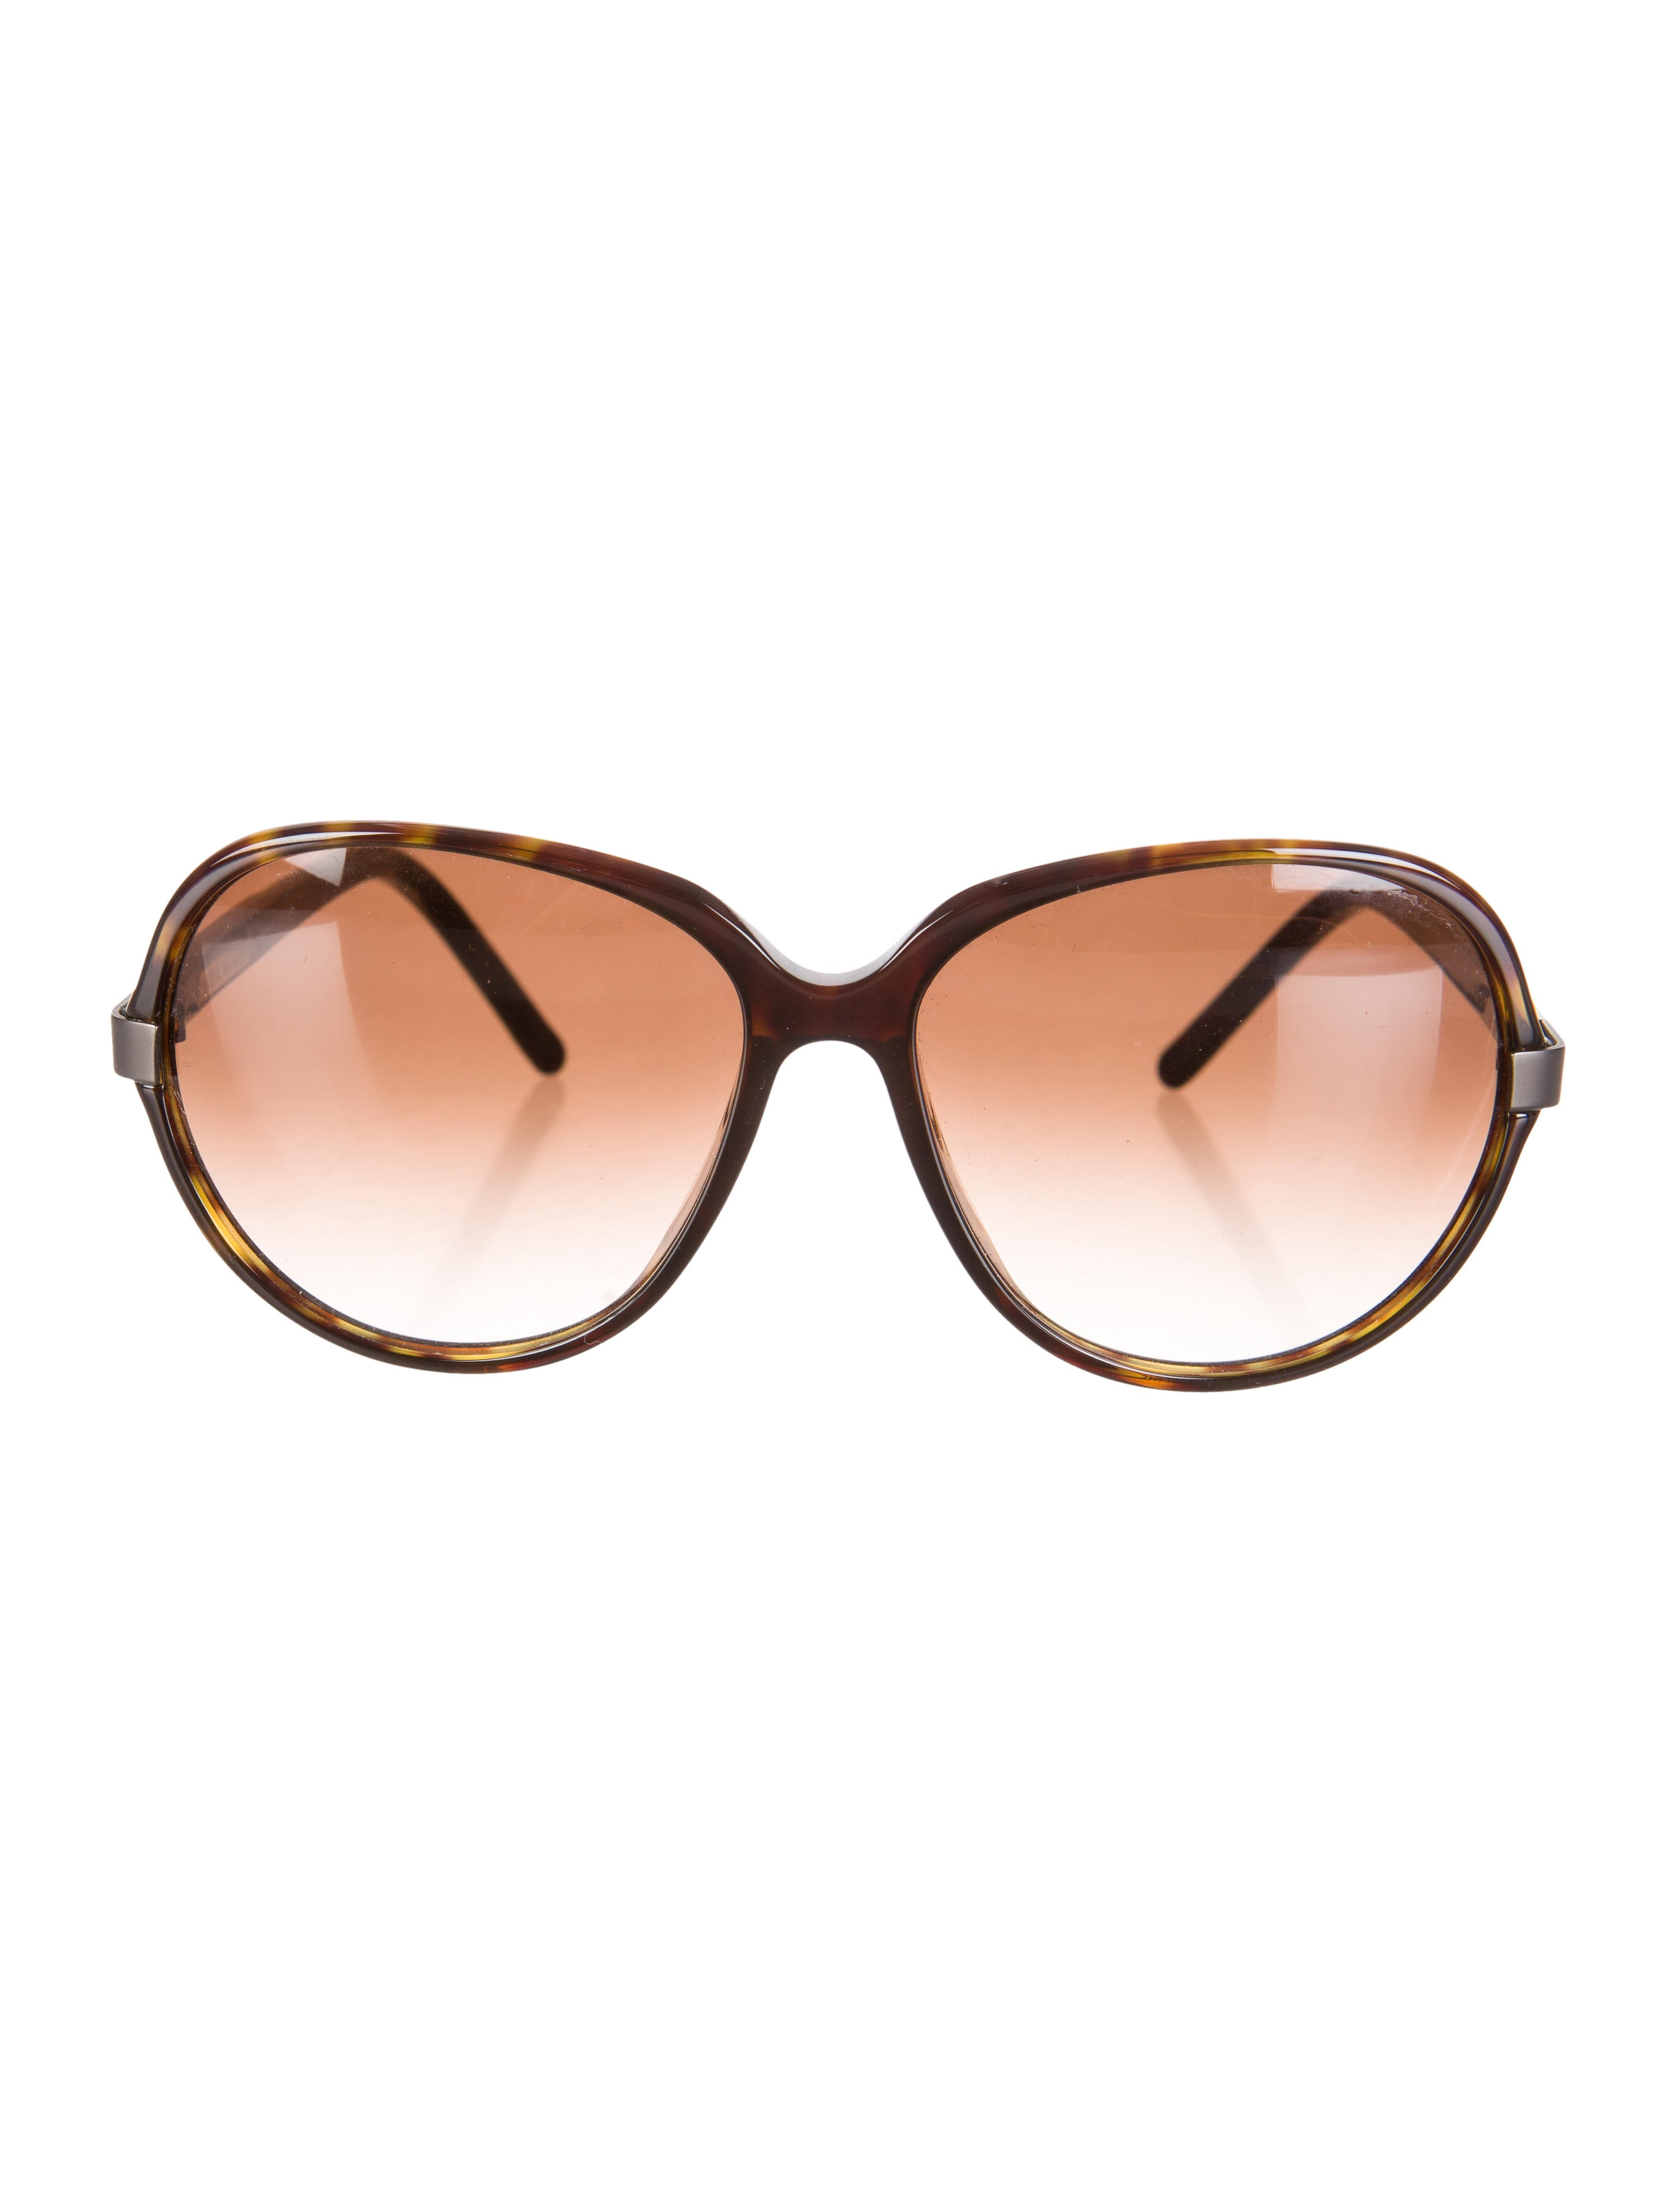 costume national sunglasses accessories cot21574 the